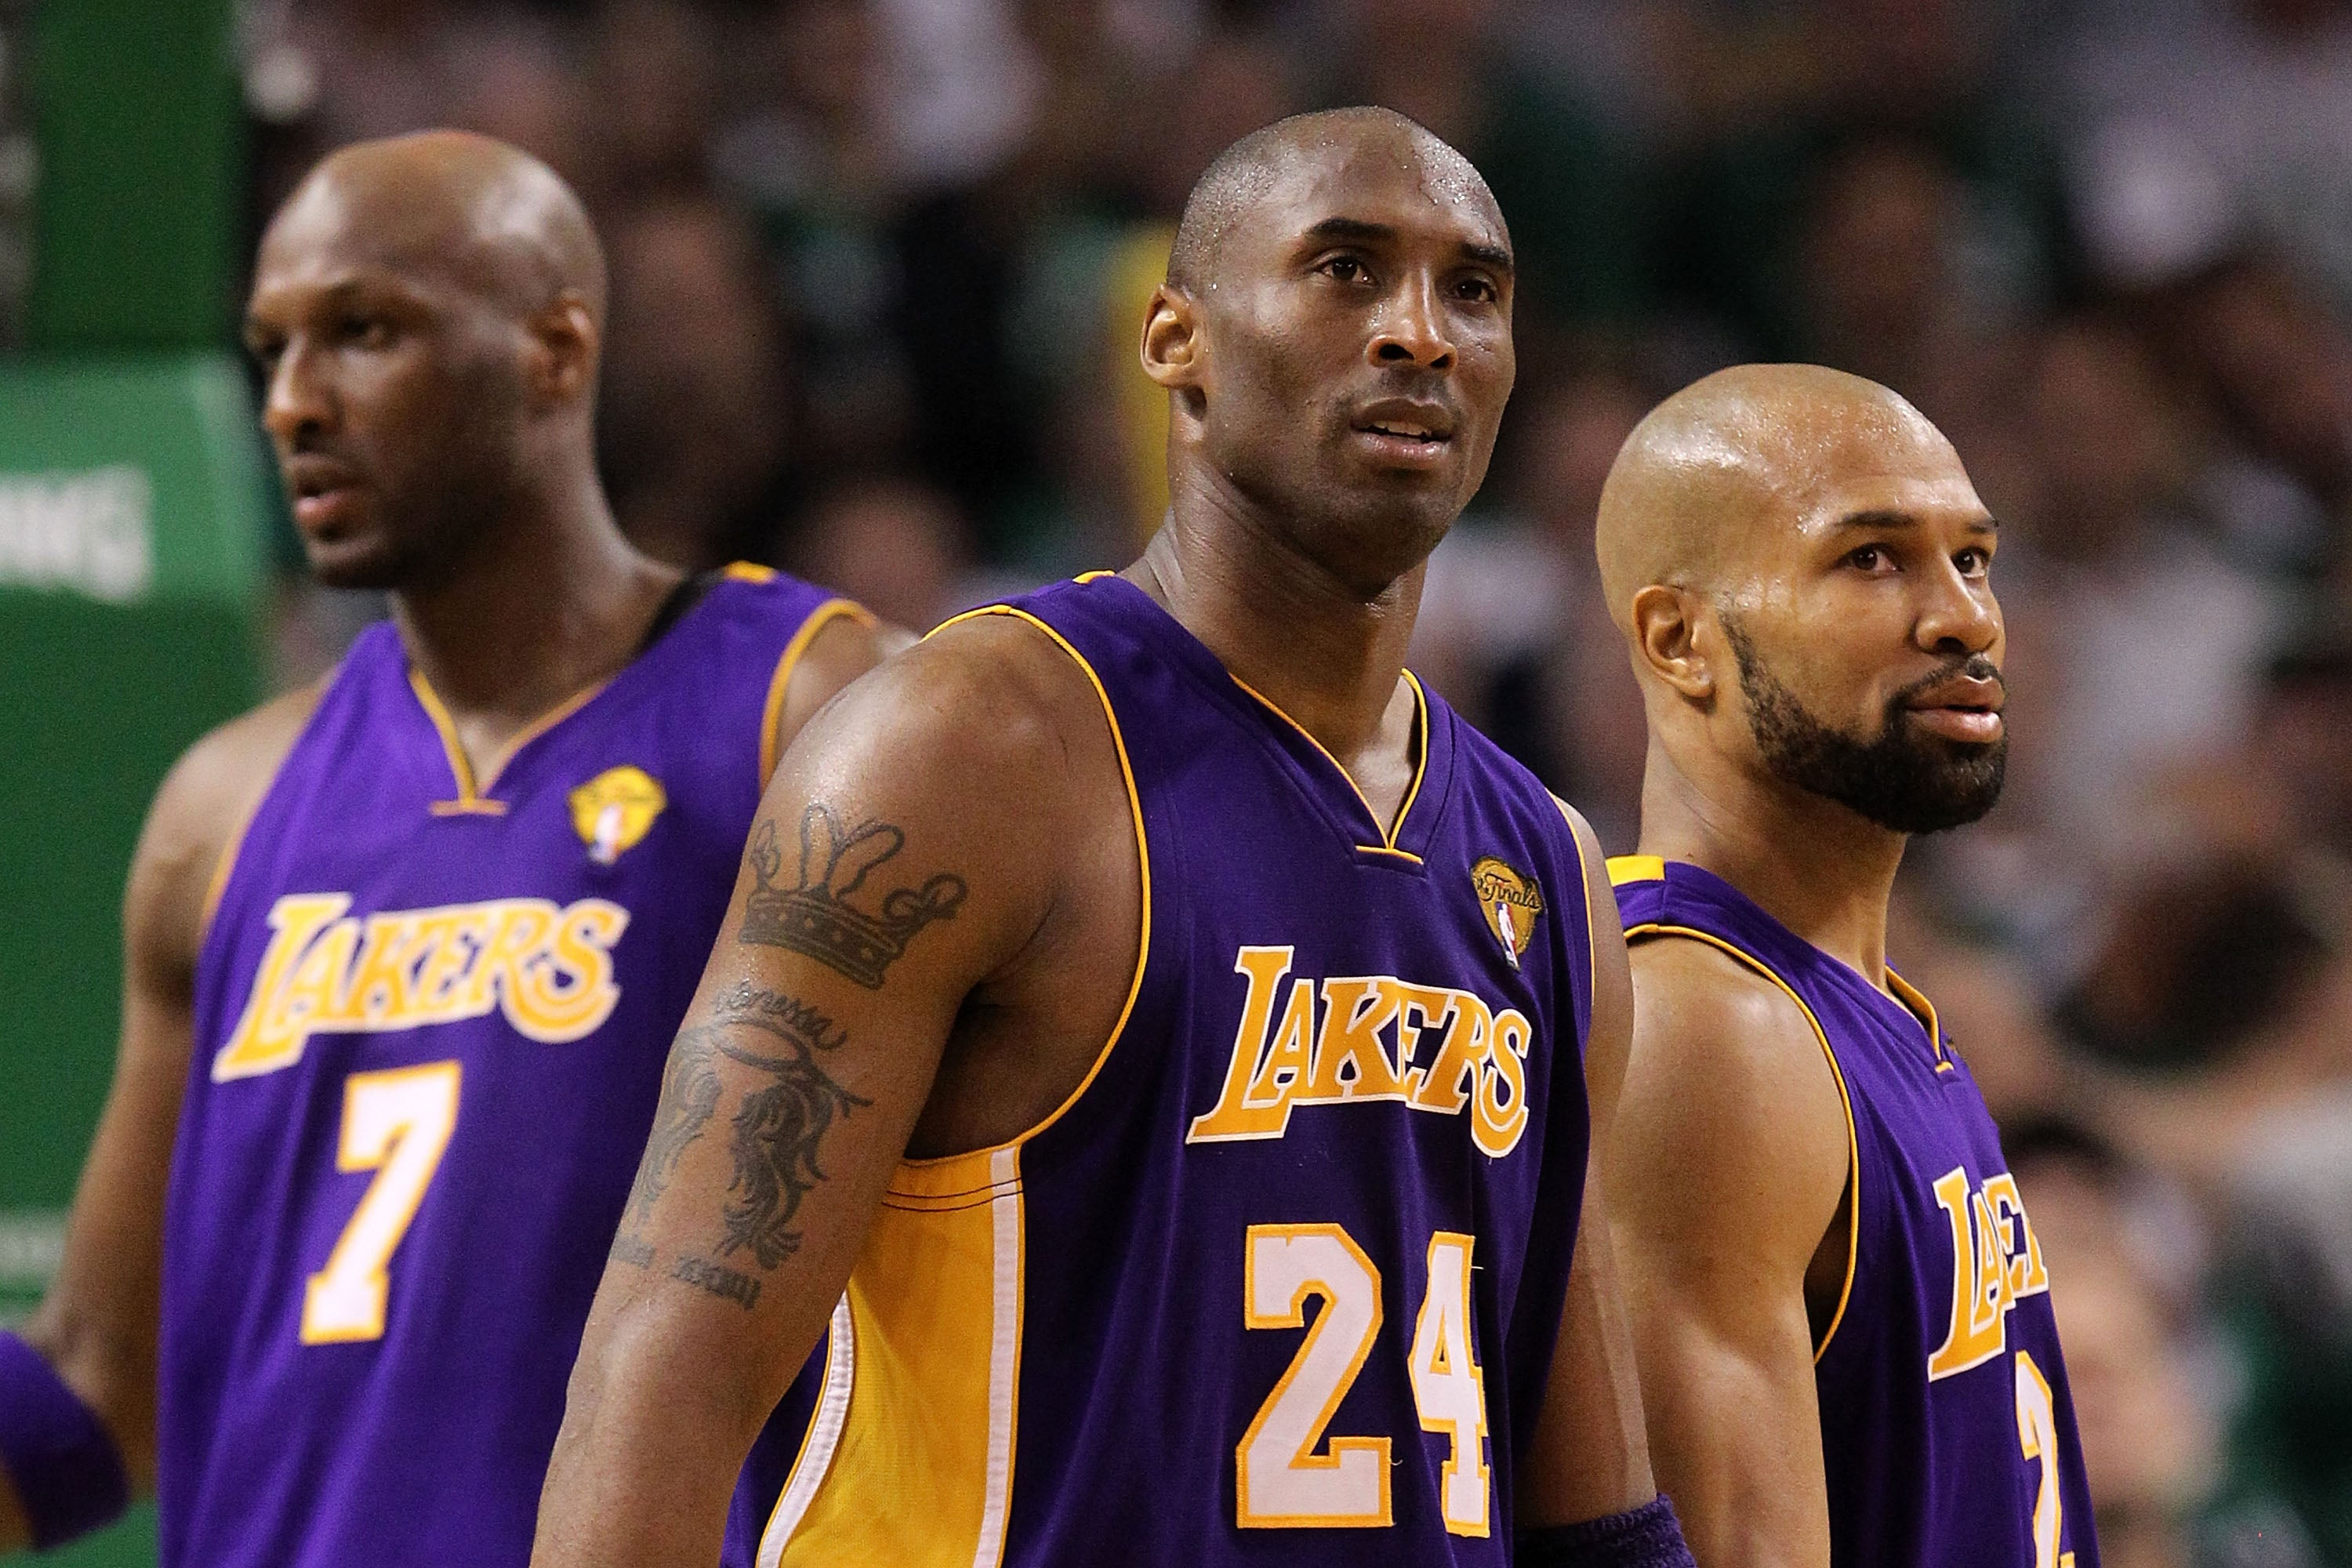 Cheer Up, Lamar Odom And Derek Fisher: Kobe's Going To Bring You Back Home